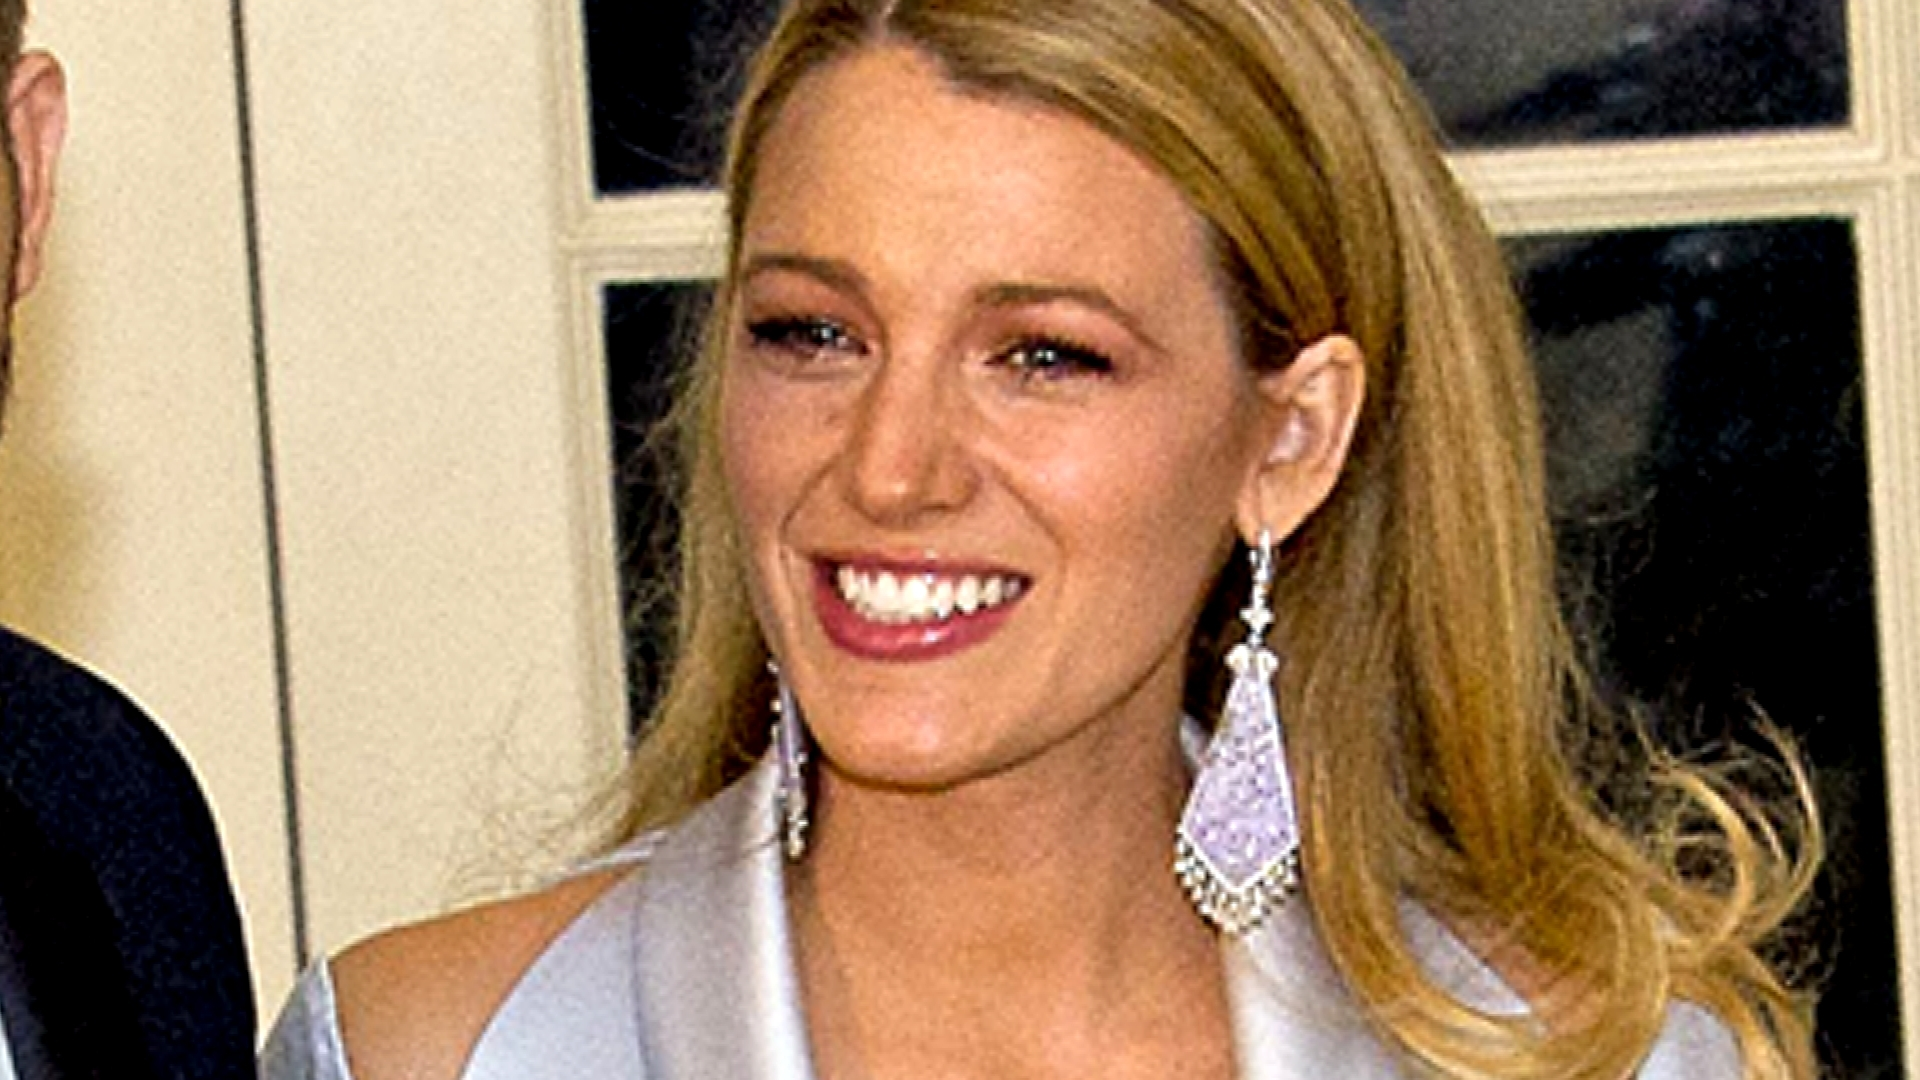 Blake Lively Suffers Wardrobe Whoops at State Dinner